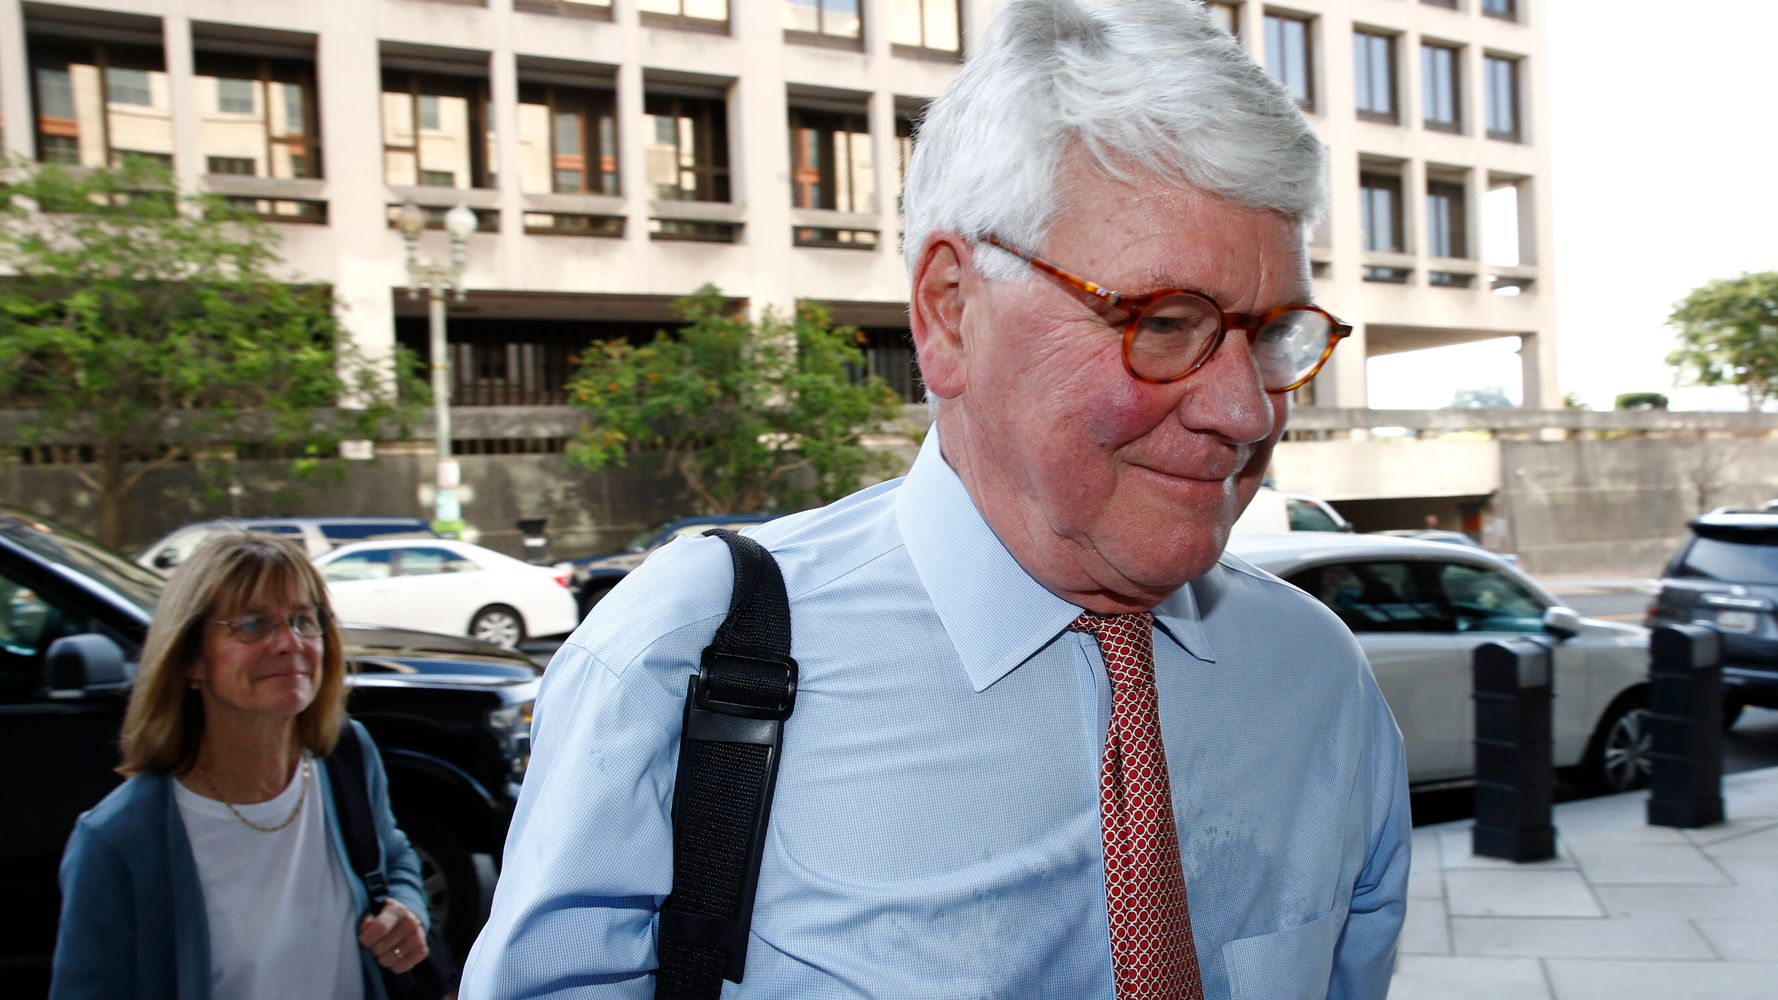 Westlake Legal Group 5d7011063b00004900cd6f49 DC Lawyer Greg Craig Acquitted In Foreign Lobbying Case Stemmed From Mueller Probe